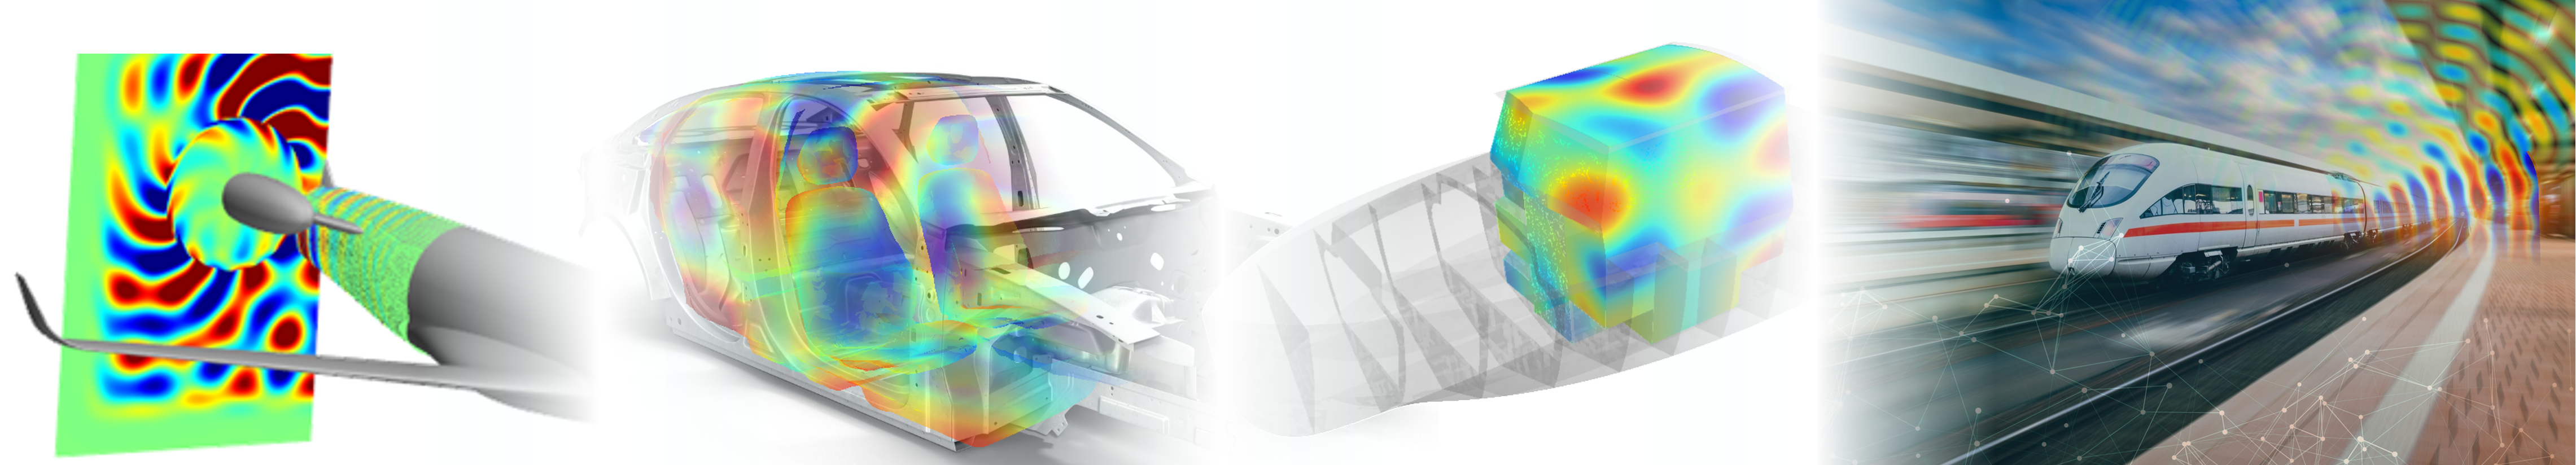 Actran, MSC Software's acoustics simulation software, designed originally for predicting noise within and around vehicles such as cars and aircraft.